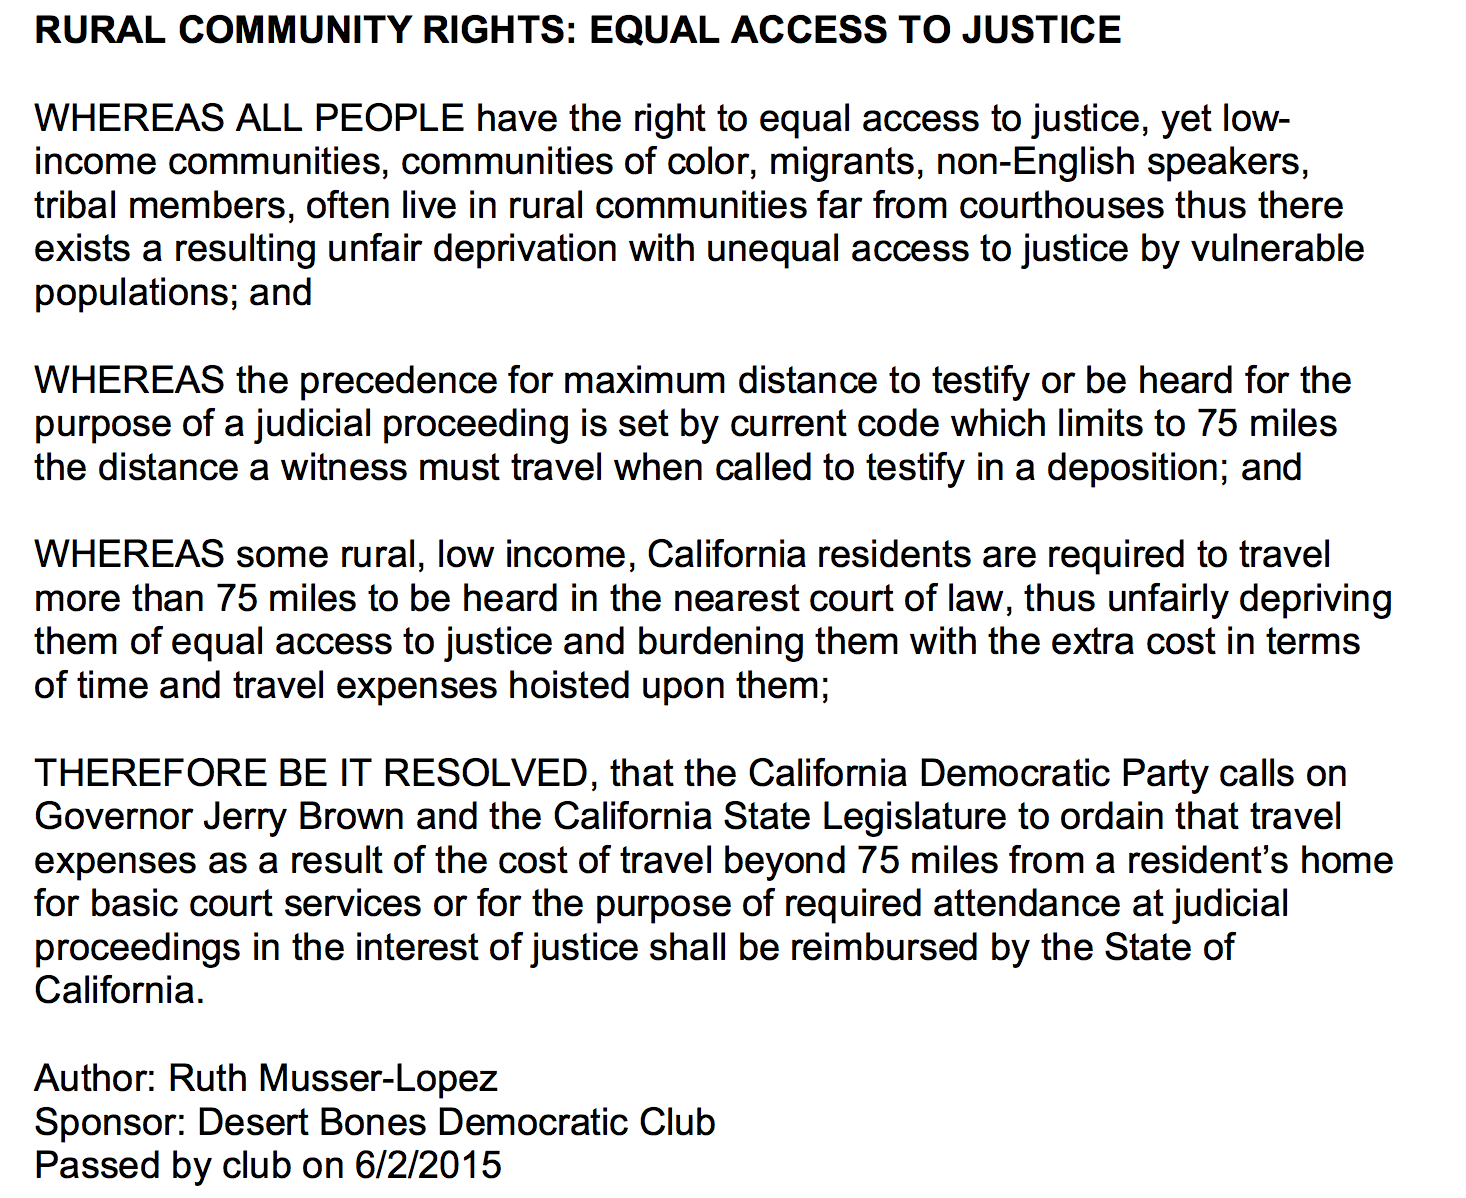 Equal Access to Justice Resolution by Ruth Musser-Lopez